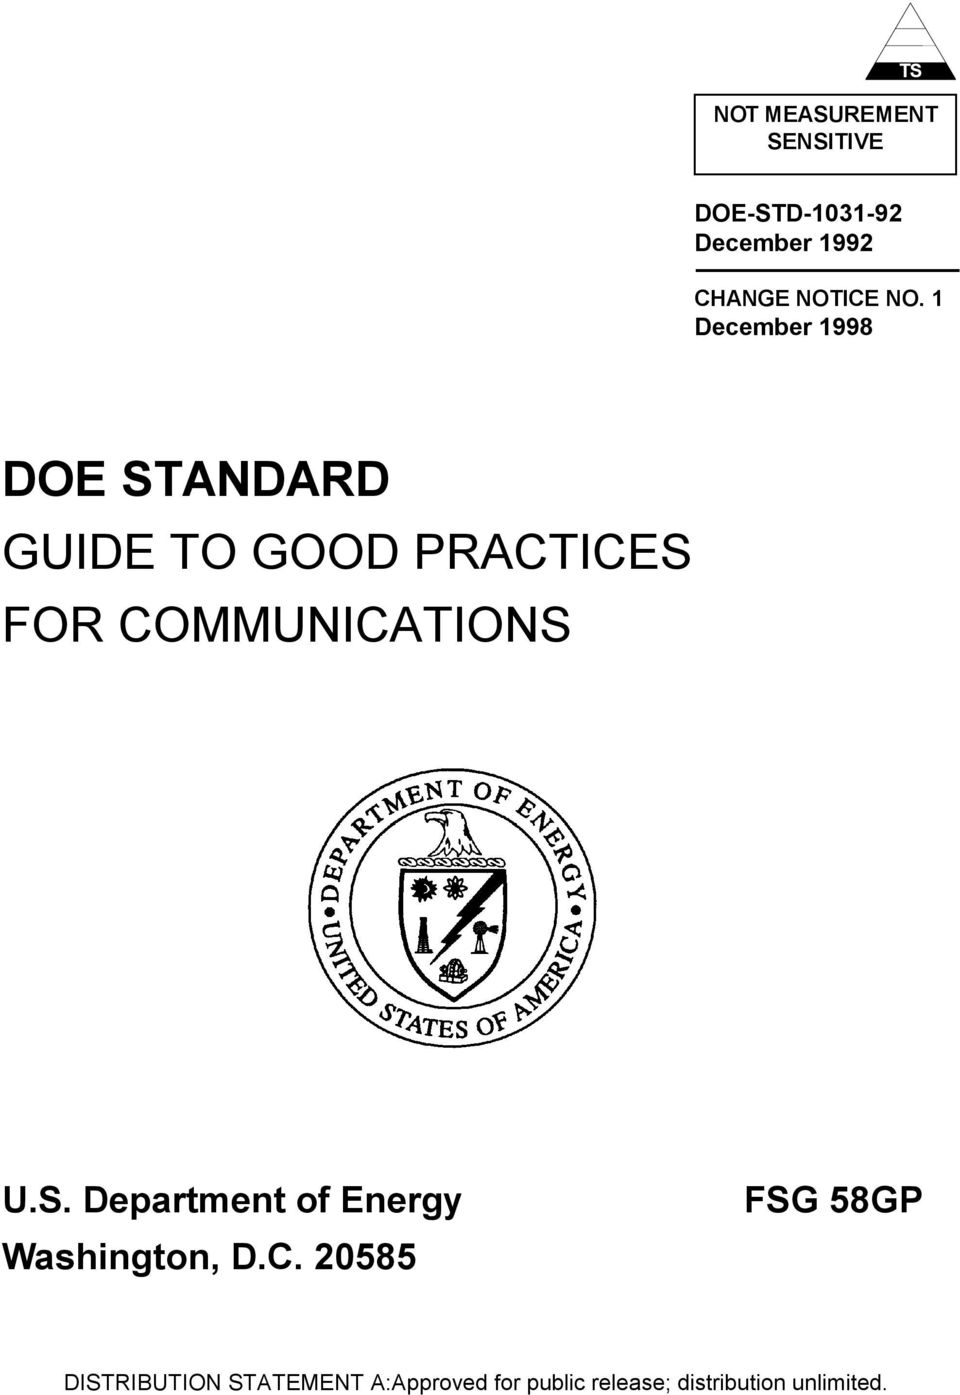 1 December 1998 DOE STANDARD GUIDE TO GOOD PRACTICES FOR